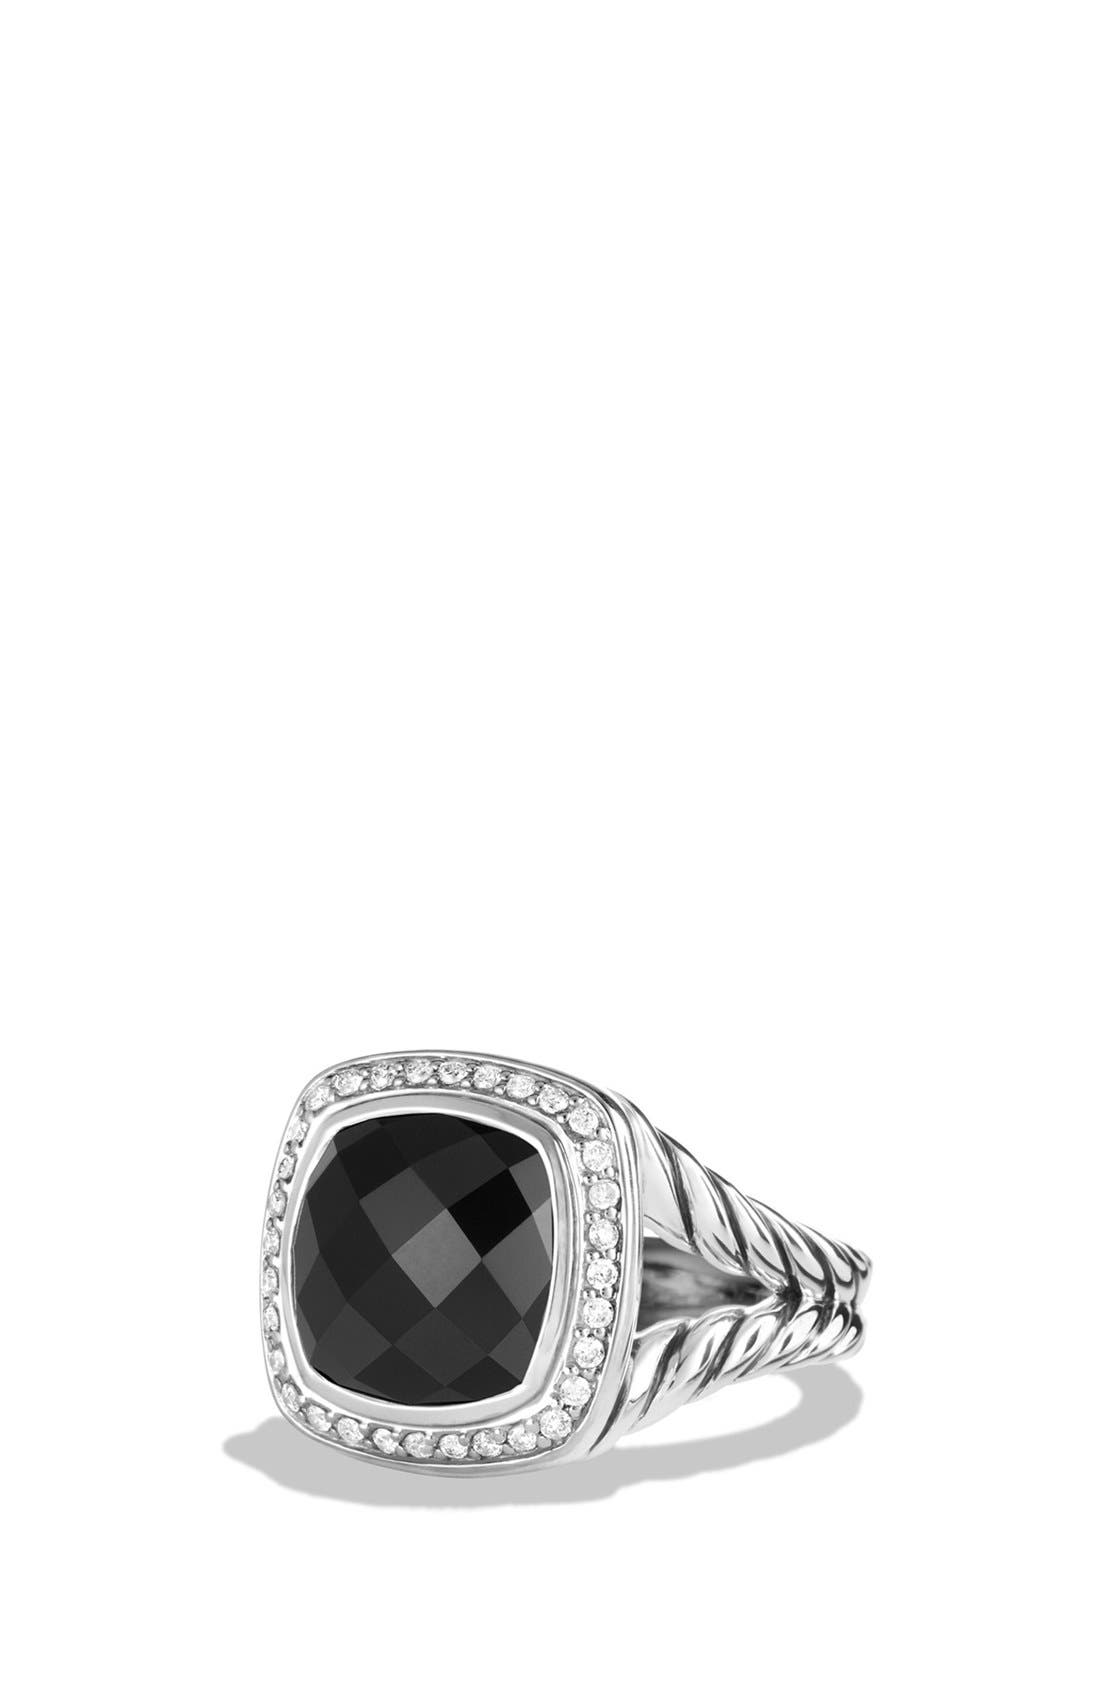 'Albion' Ring with Semiprecious Stone and Diamonds,                             Main thumbnail 1, color,                             BLACK ONYX